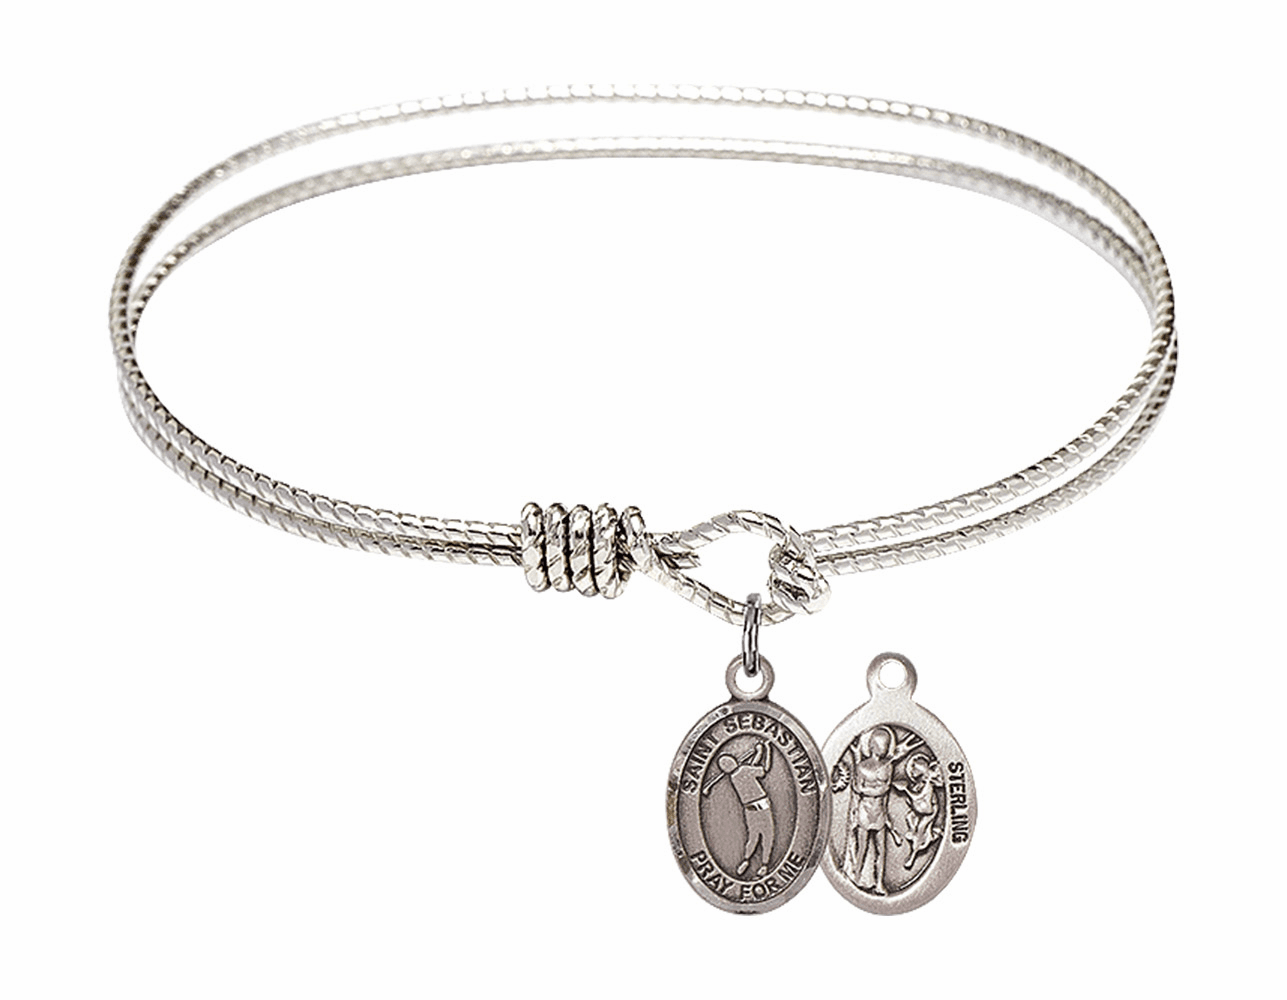 Twist Round Eye Hook St Sebastian Golf Bangle Charm Bracelet by Bliss